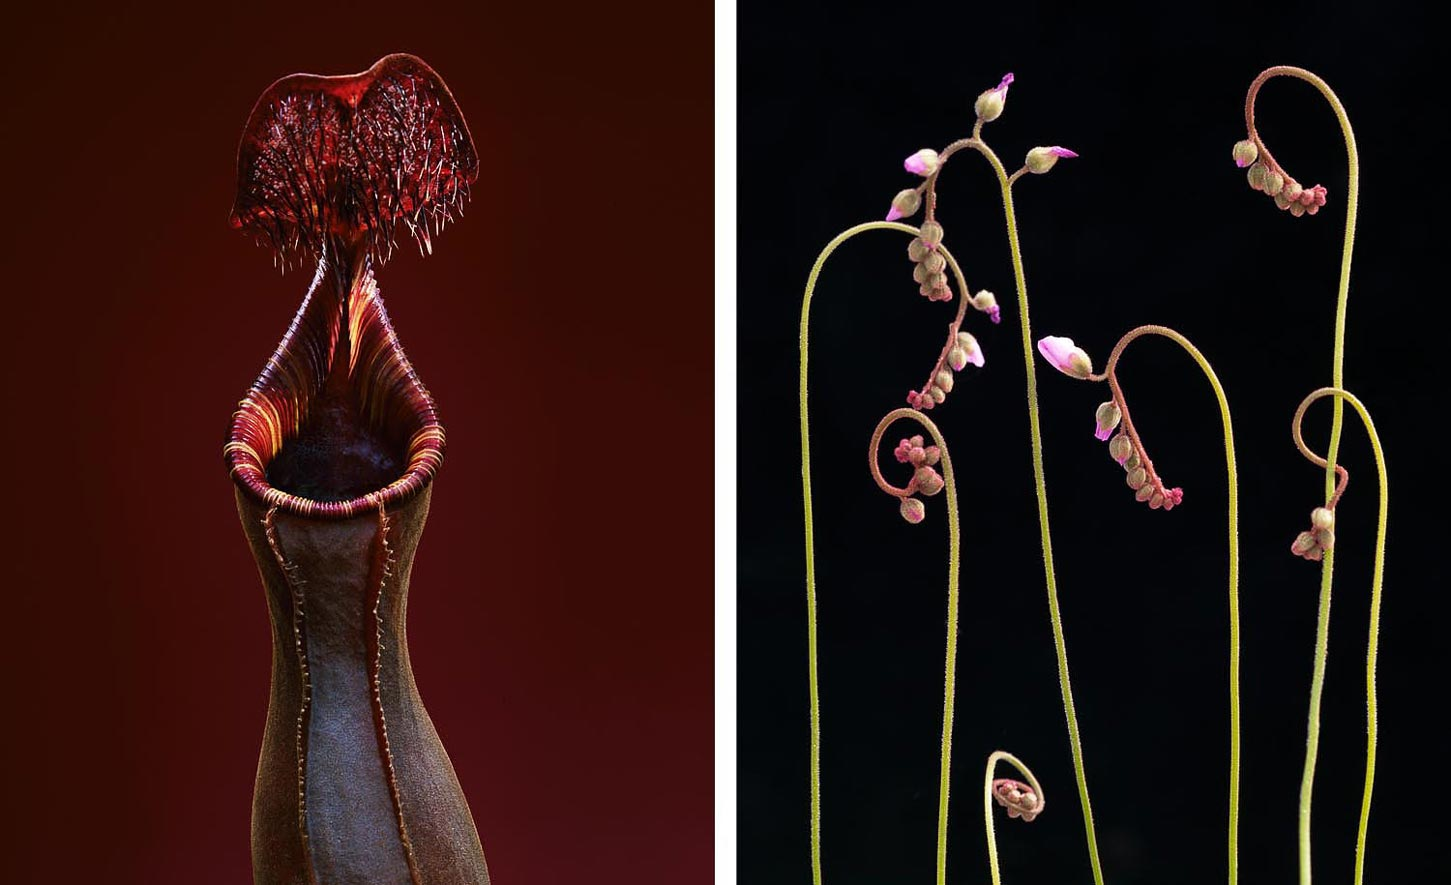 Nepenthes lowii / Droseras in bud